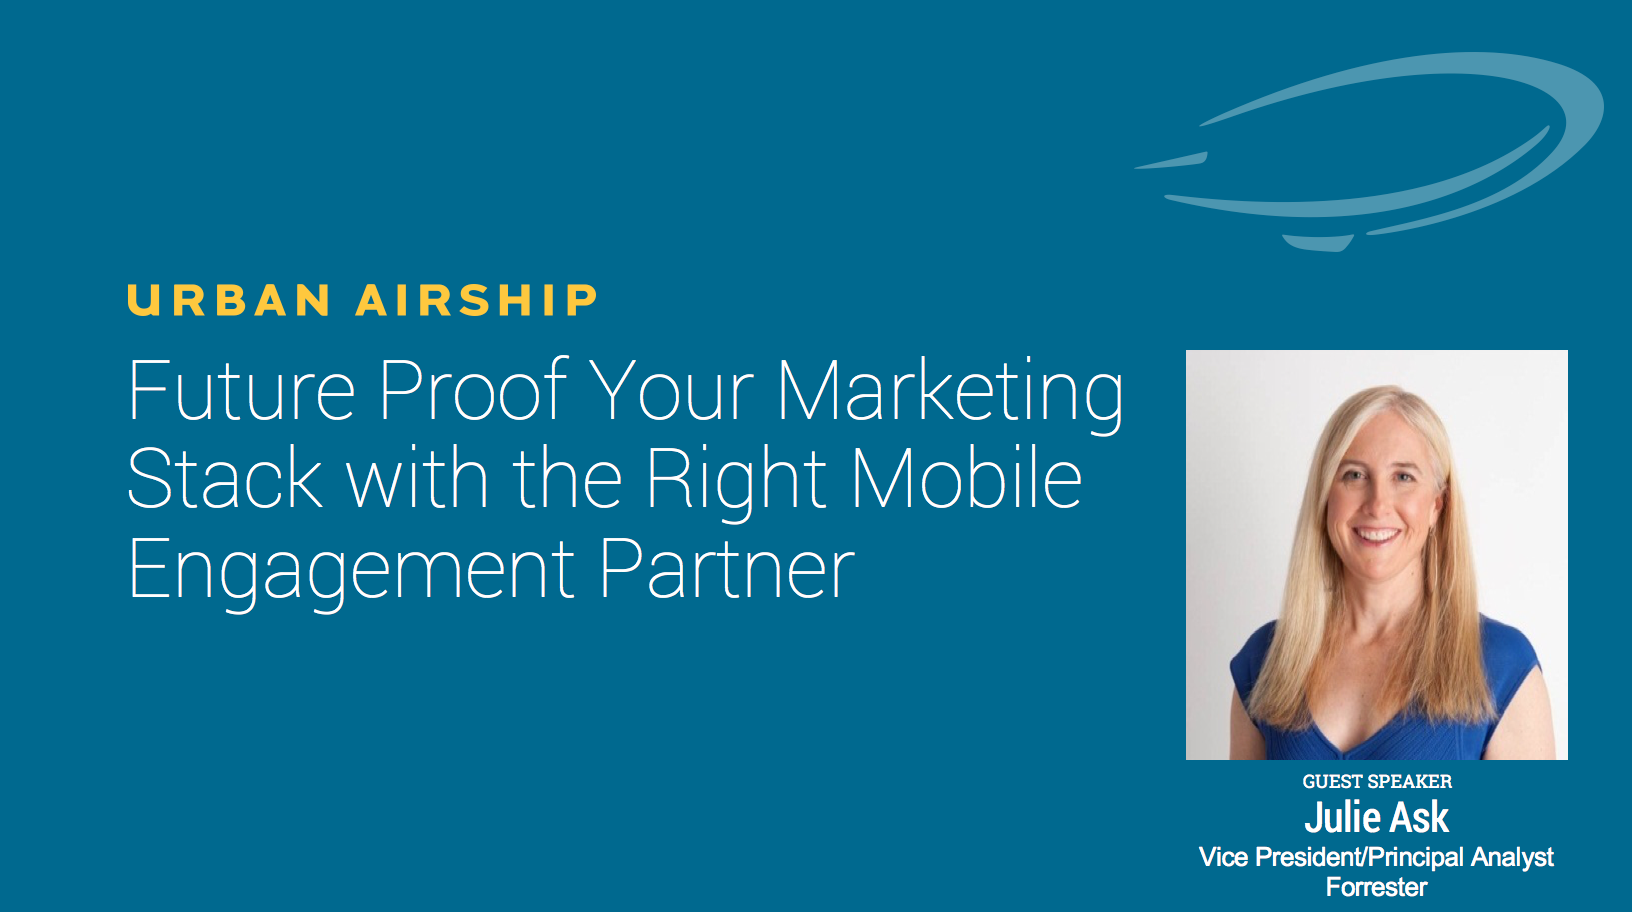 future-proof-your-marketing-stack-with-the-right-mobile-engagement-partner-webinar-cover